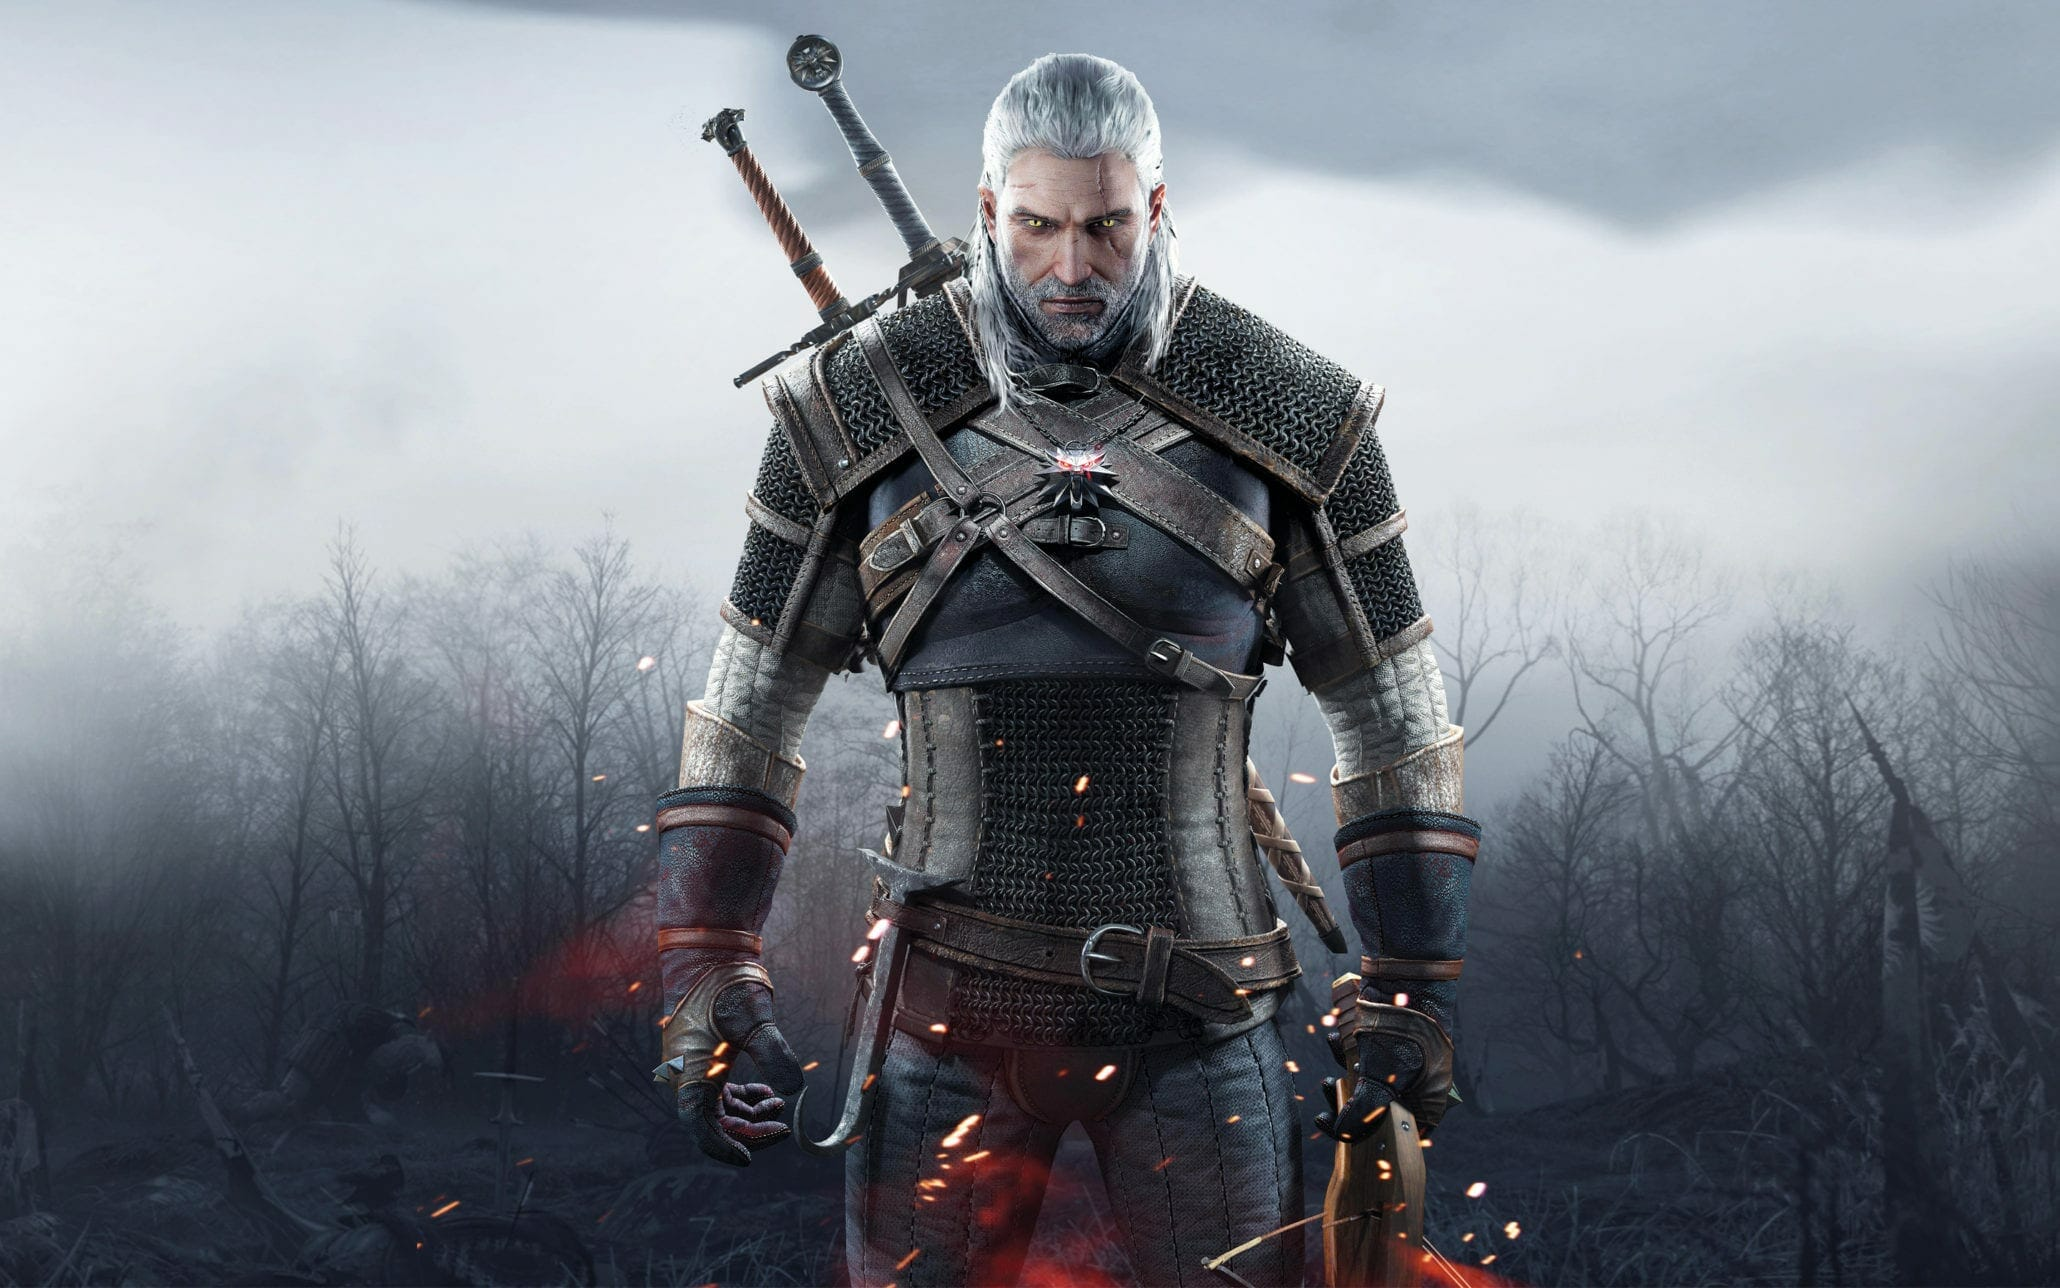 Witcher 3 for Xbox Game Pass